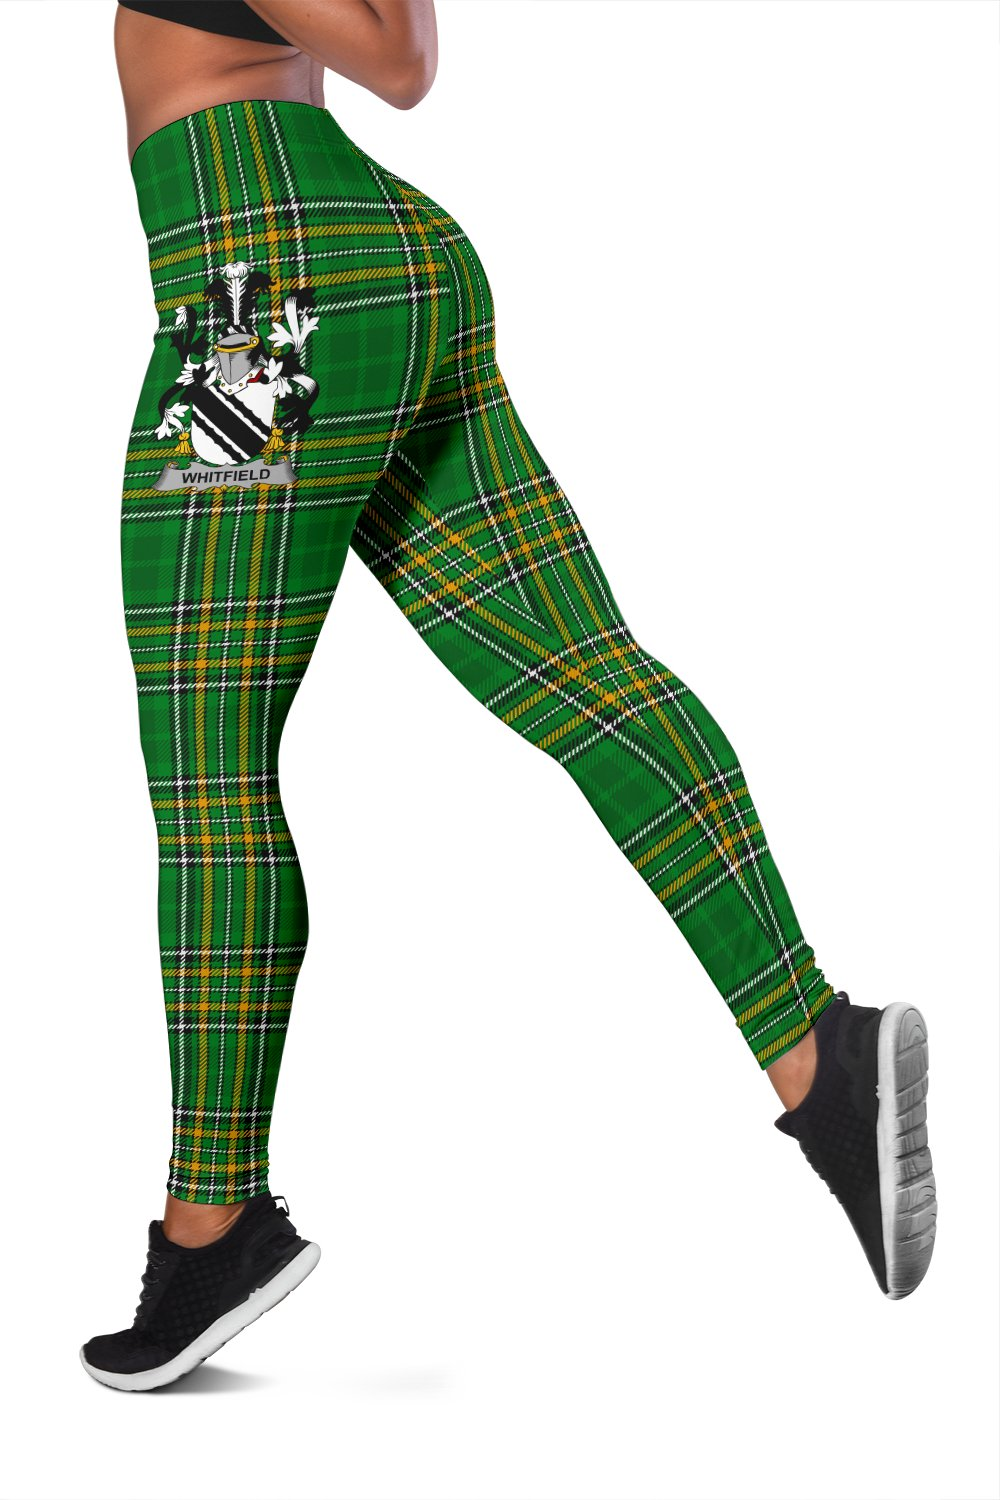 Whitfield Ireland Leggings Irish National Tartan | Over 1400 Crests | Clothing | Pant